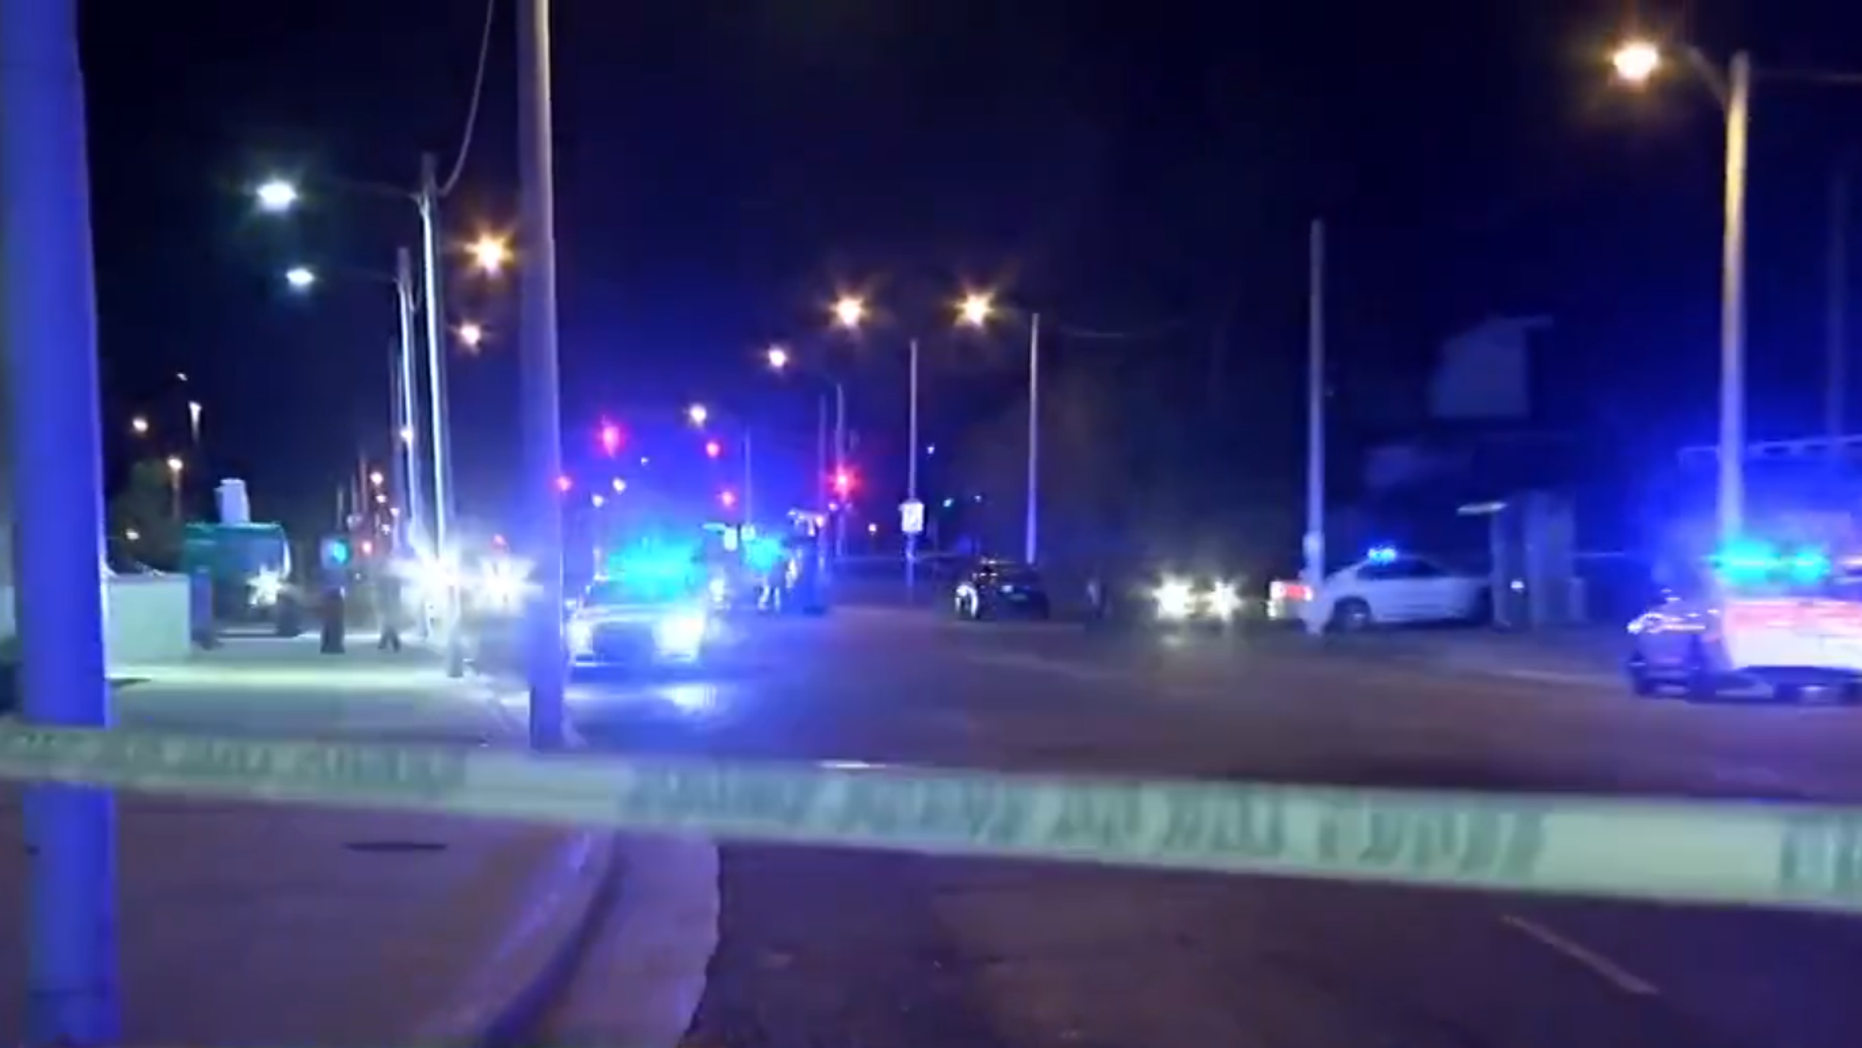 Two people were killed and four others wounded when they were shot inside their vehicle in Memphis.